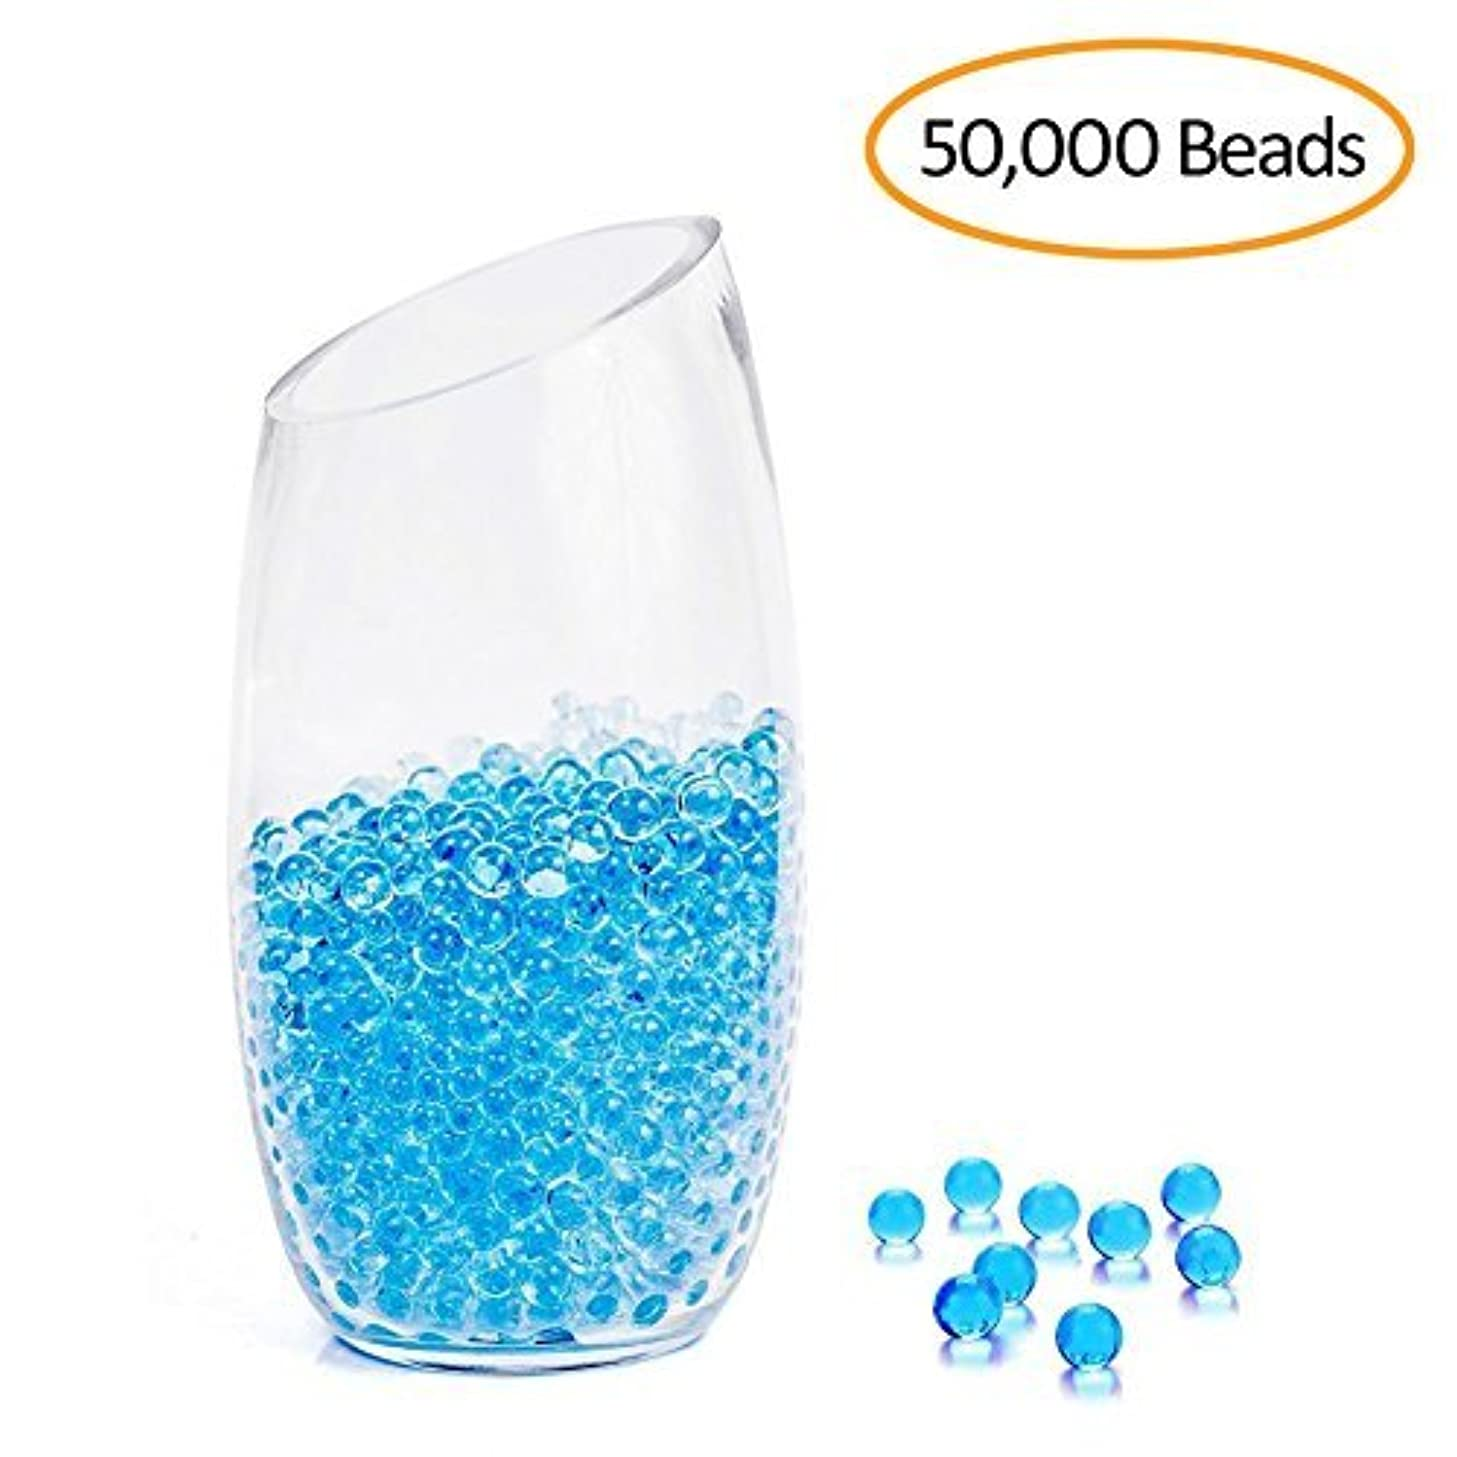 Blue Water Beads 50000 Gel Beads Non Toxic for Kids Tactile Sensory Toys, Spa Refill,Vases, Plants, Wedding and Home Decoration